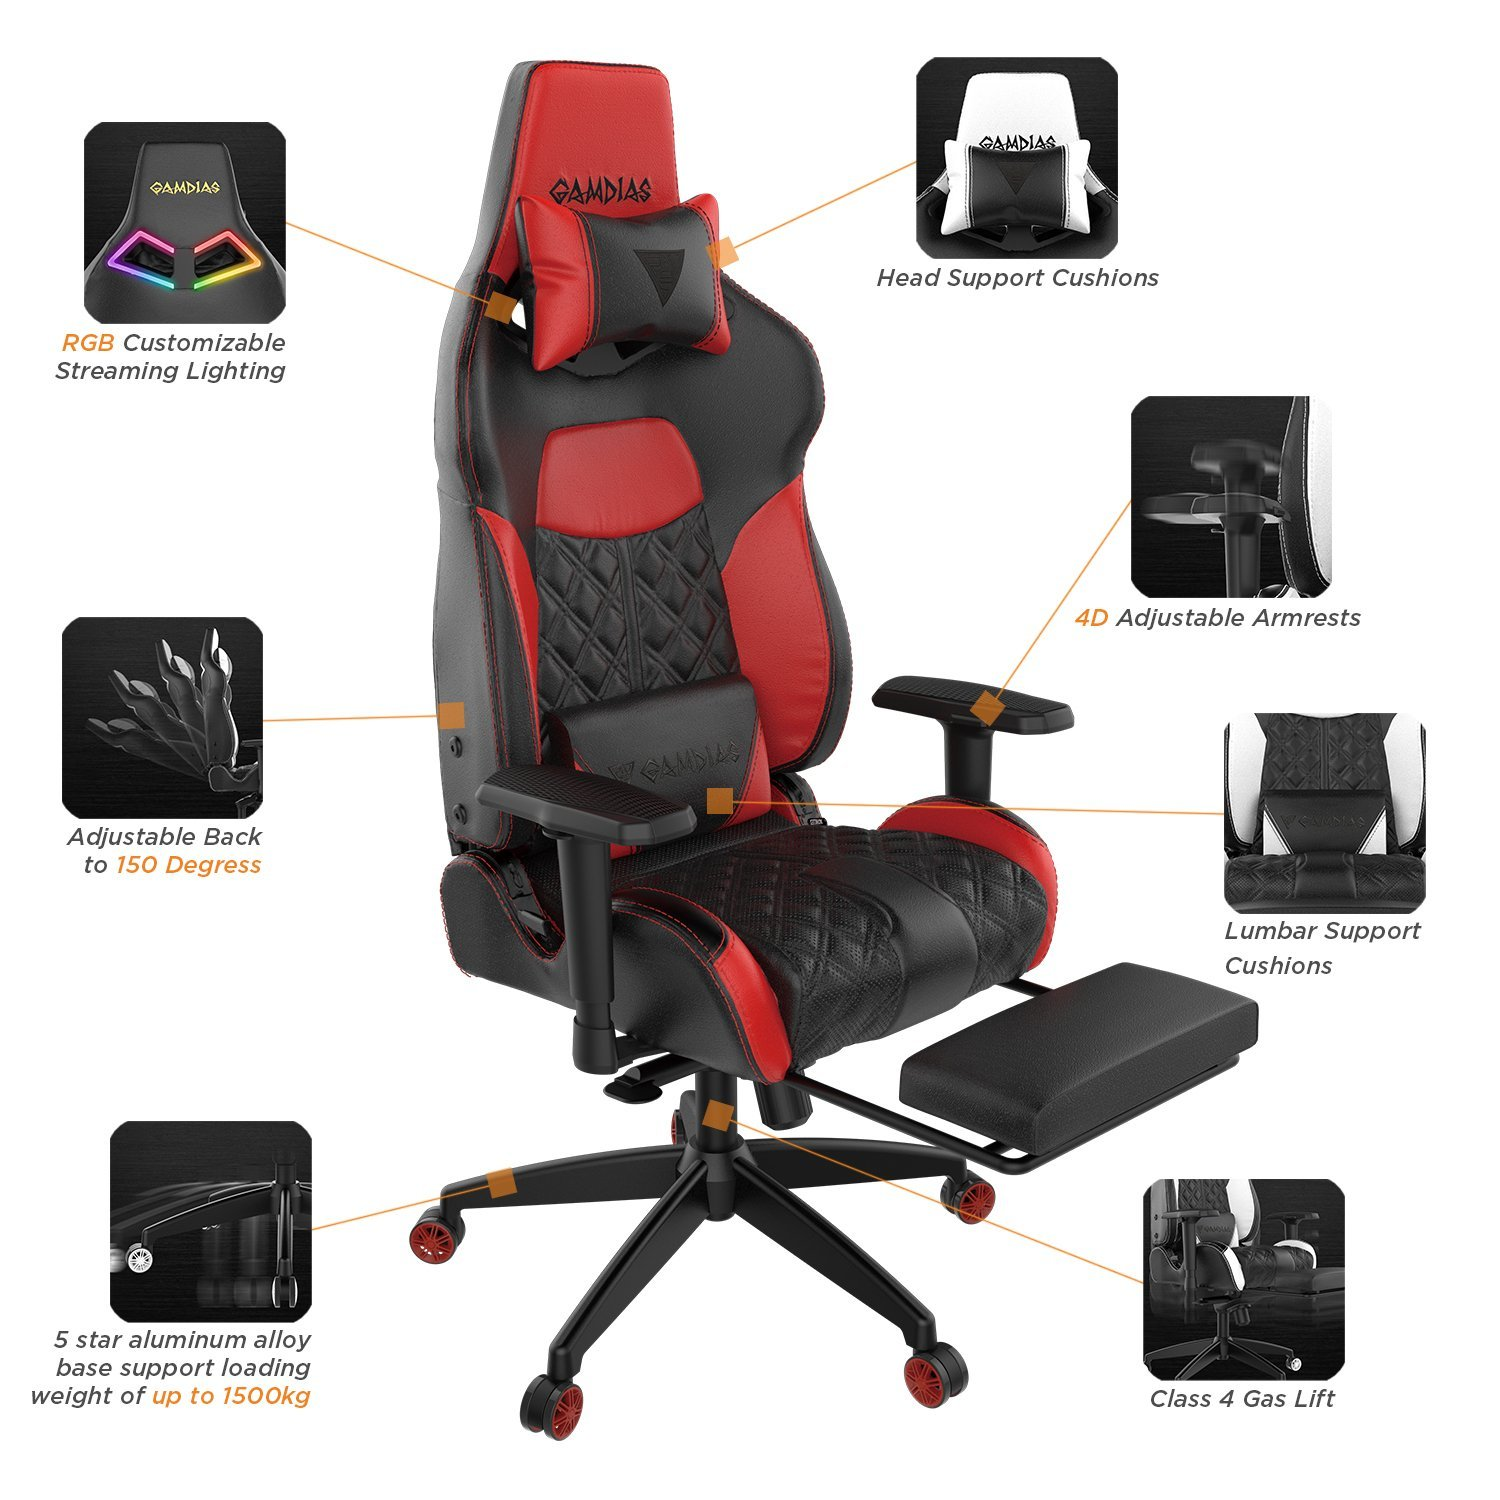 Gamdias Achilles P1 Gaming Chair Image 2